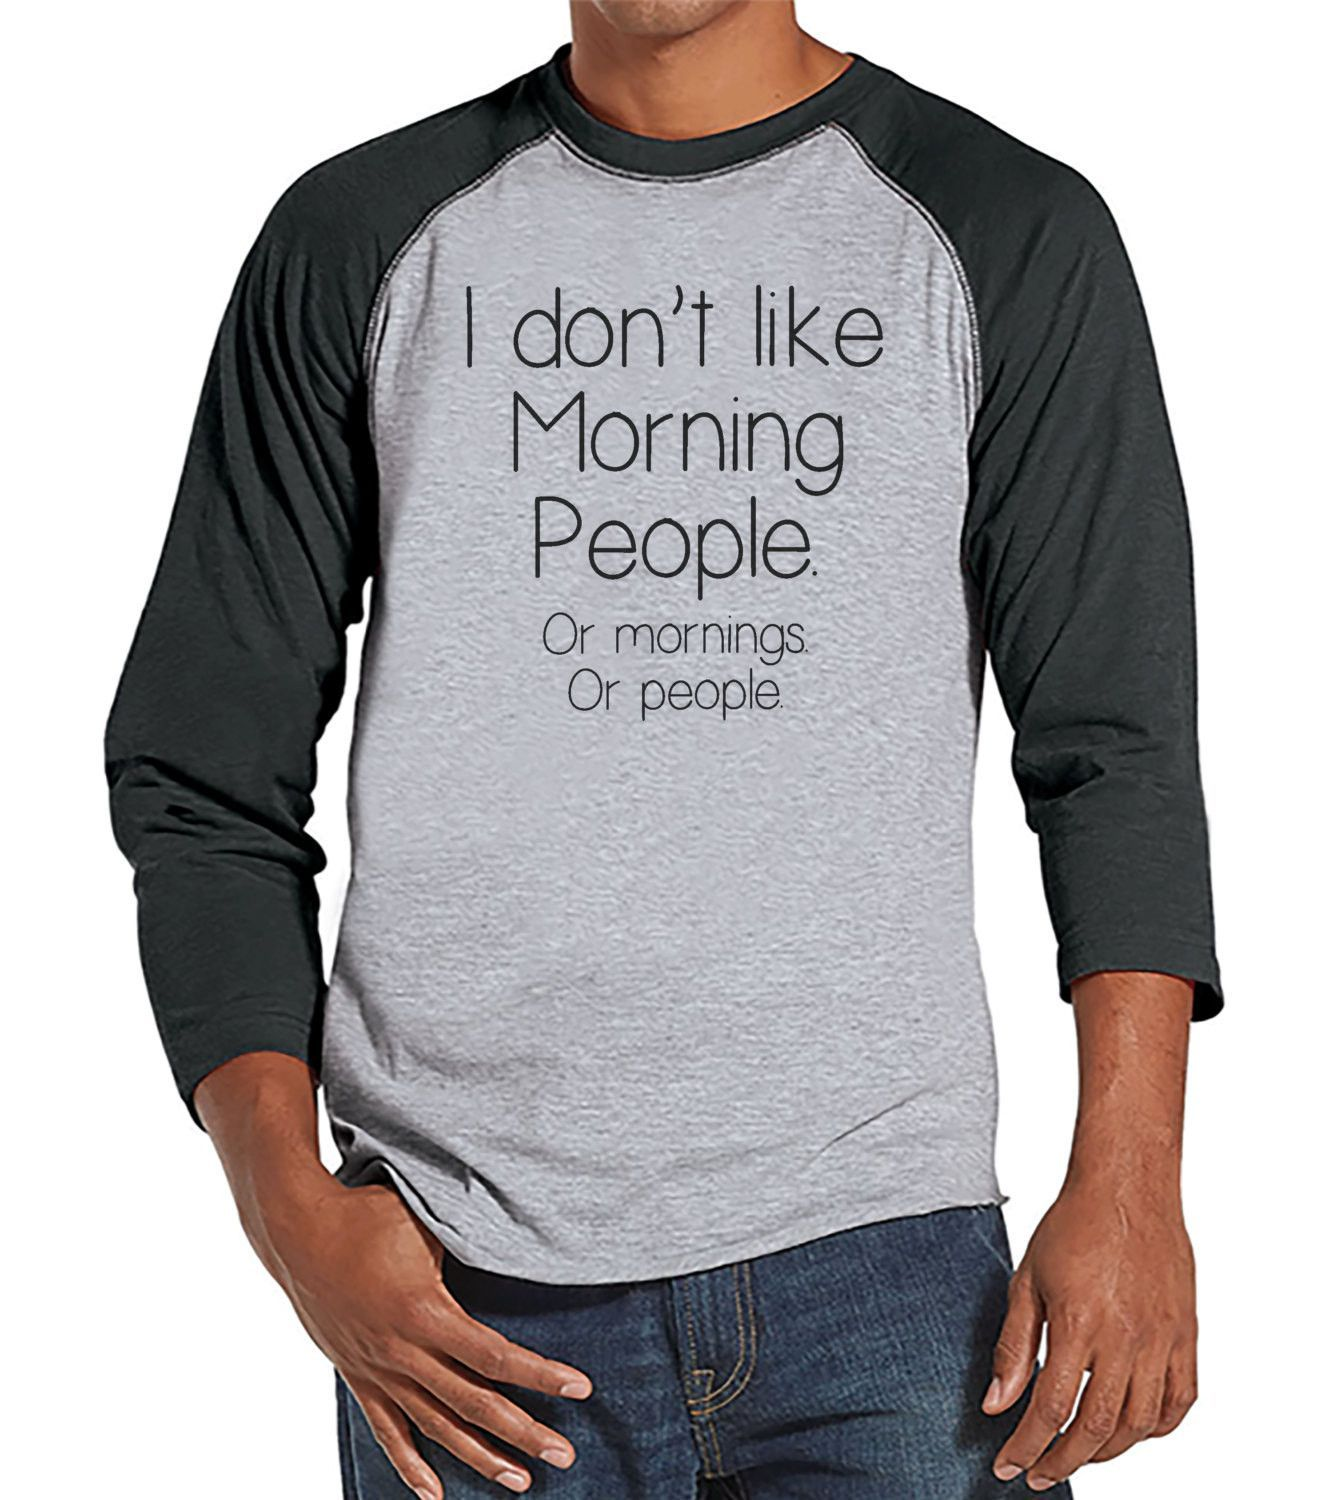 Men's Funny Tshirt - Gift for Coworker - I Don't Like Morning People - Funny Gift For Dad - Mens Funny Tshirt - Humorous Mens Grey Raglan